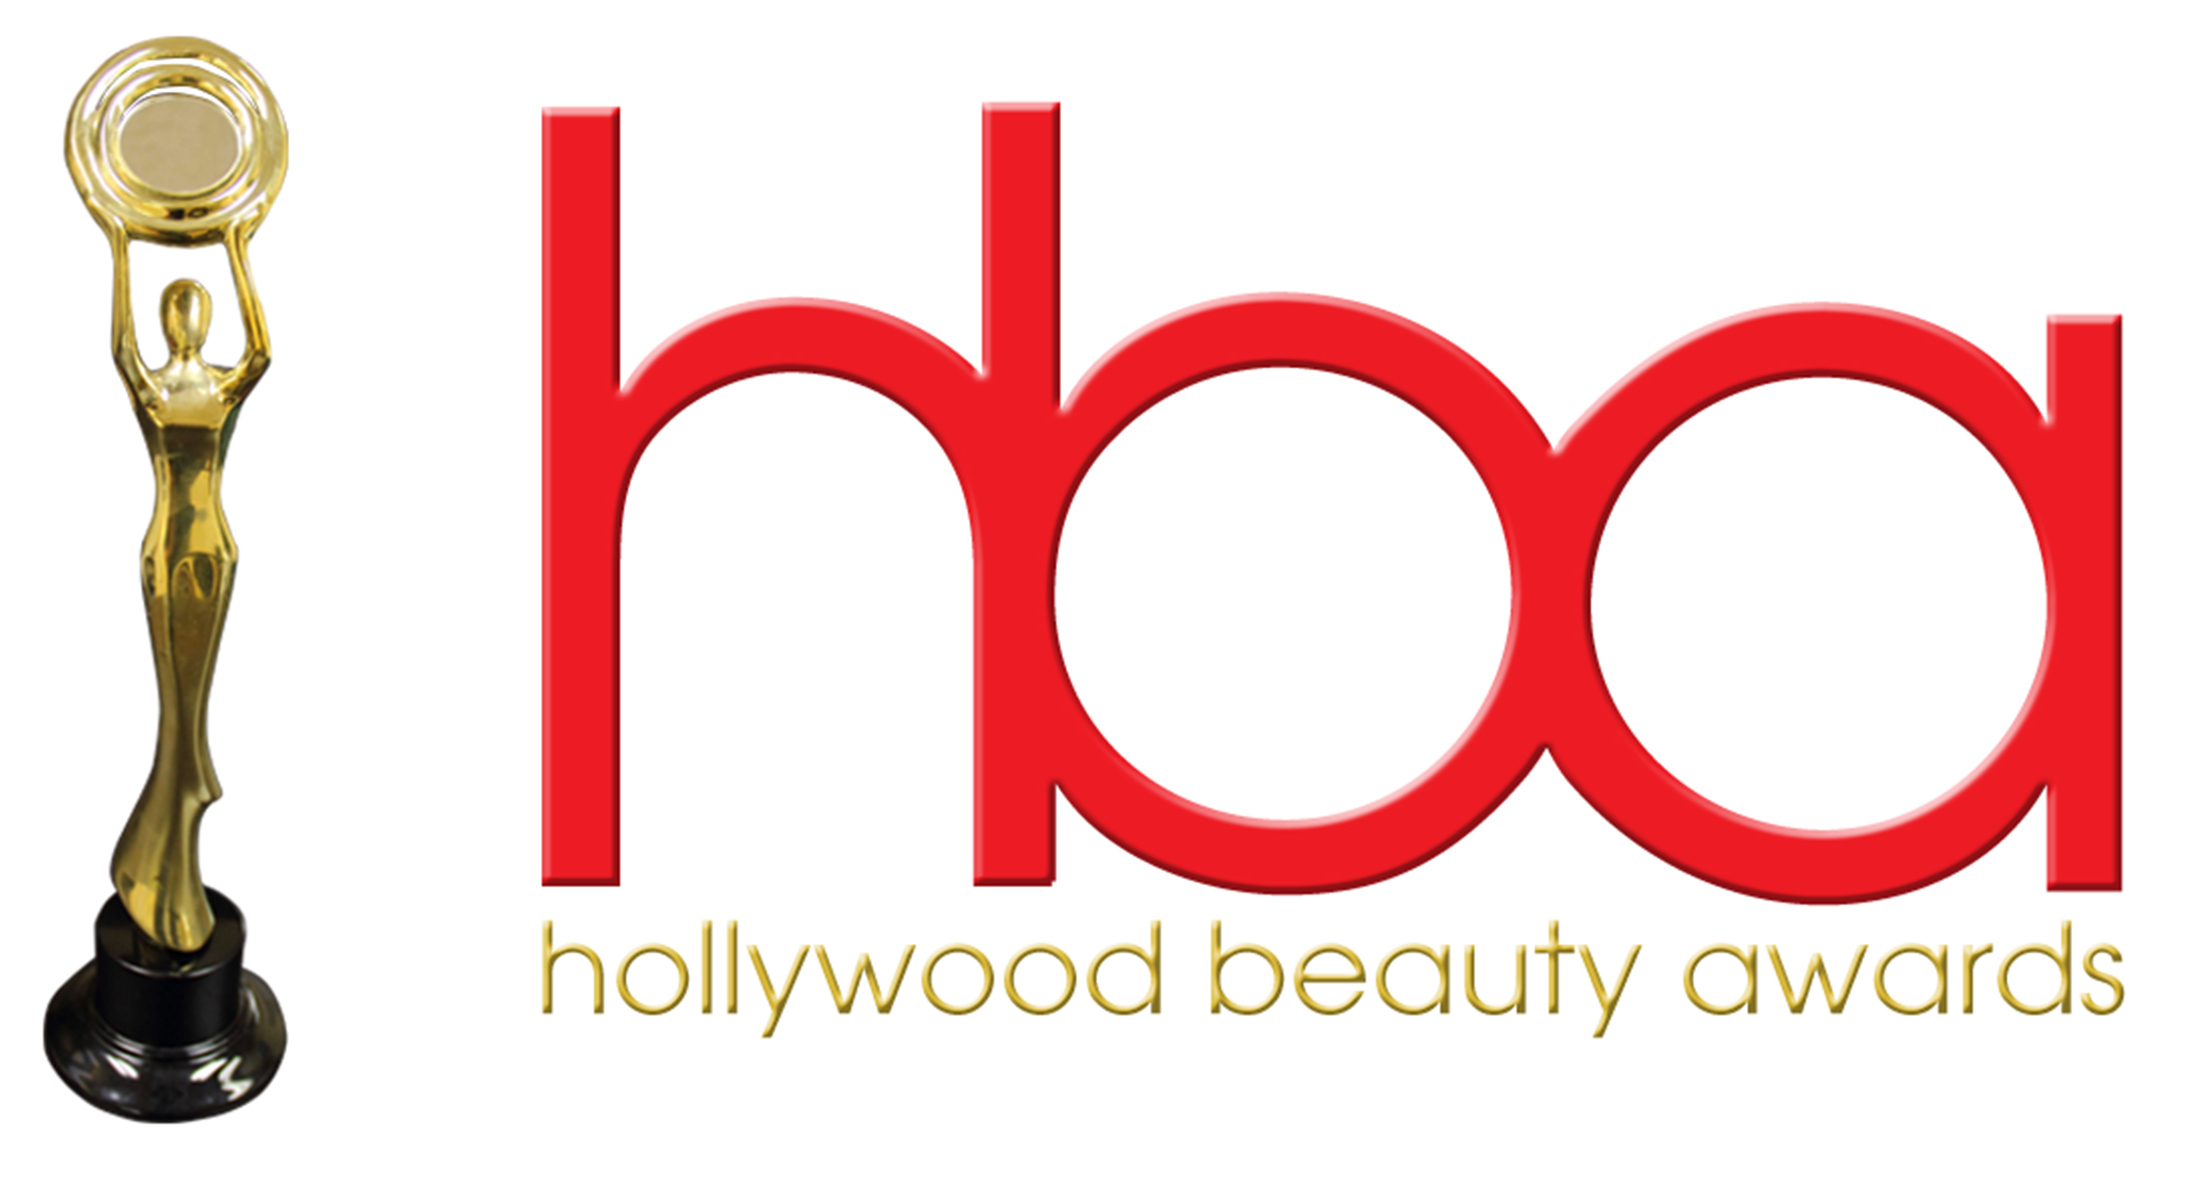 2019 hollywood beauty awards honorees, nominees